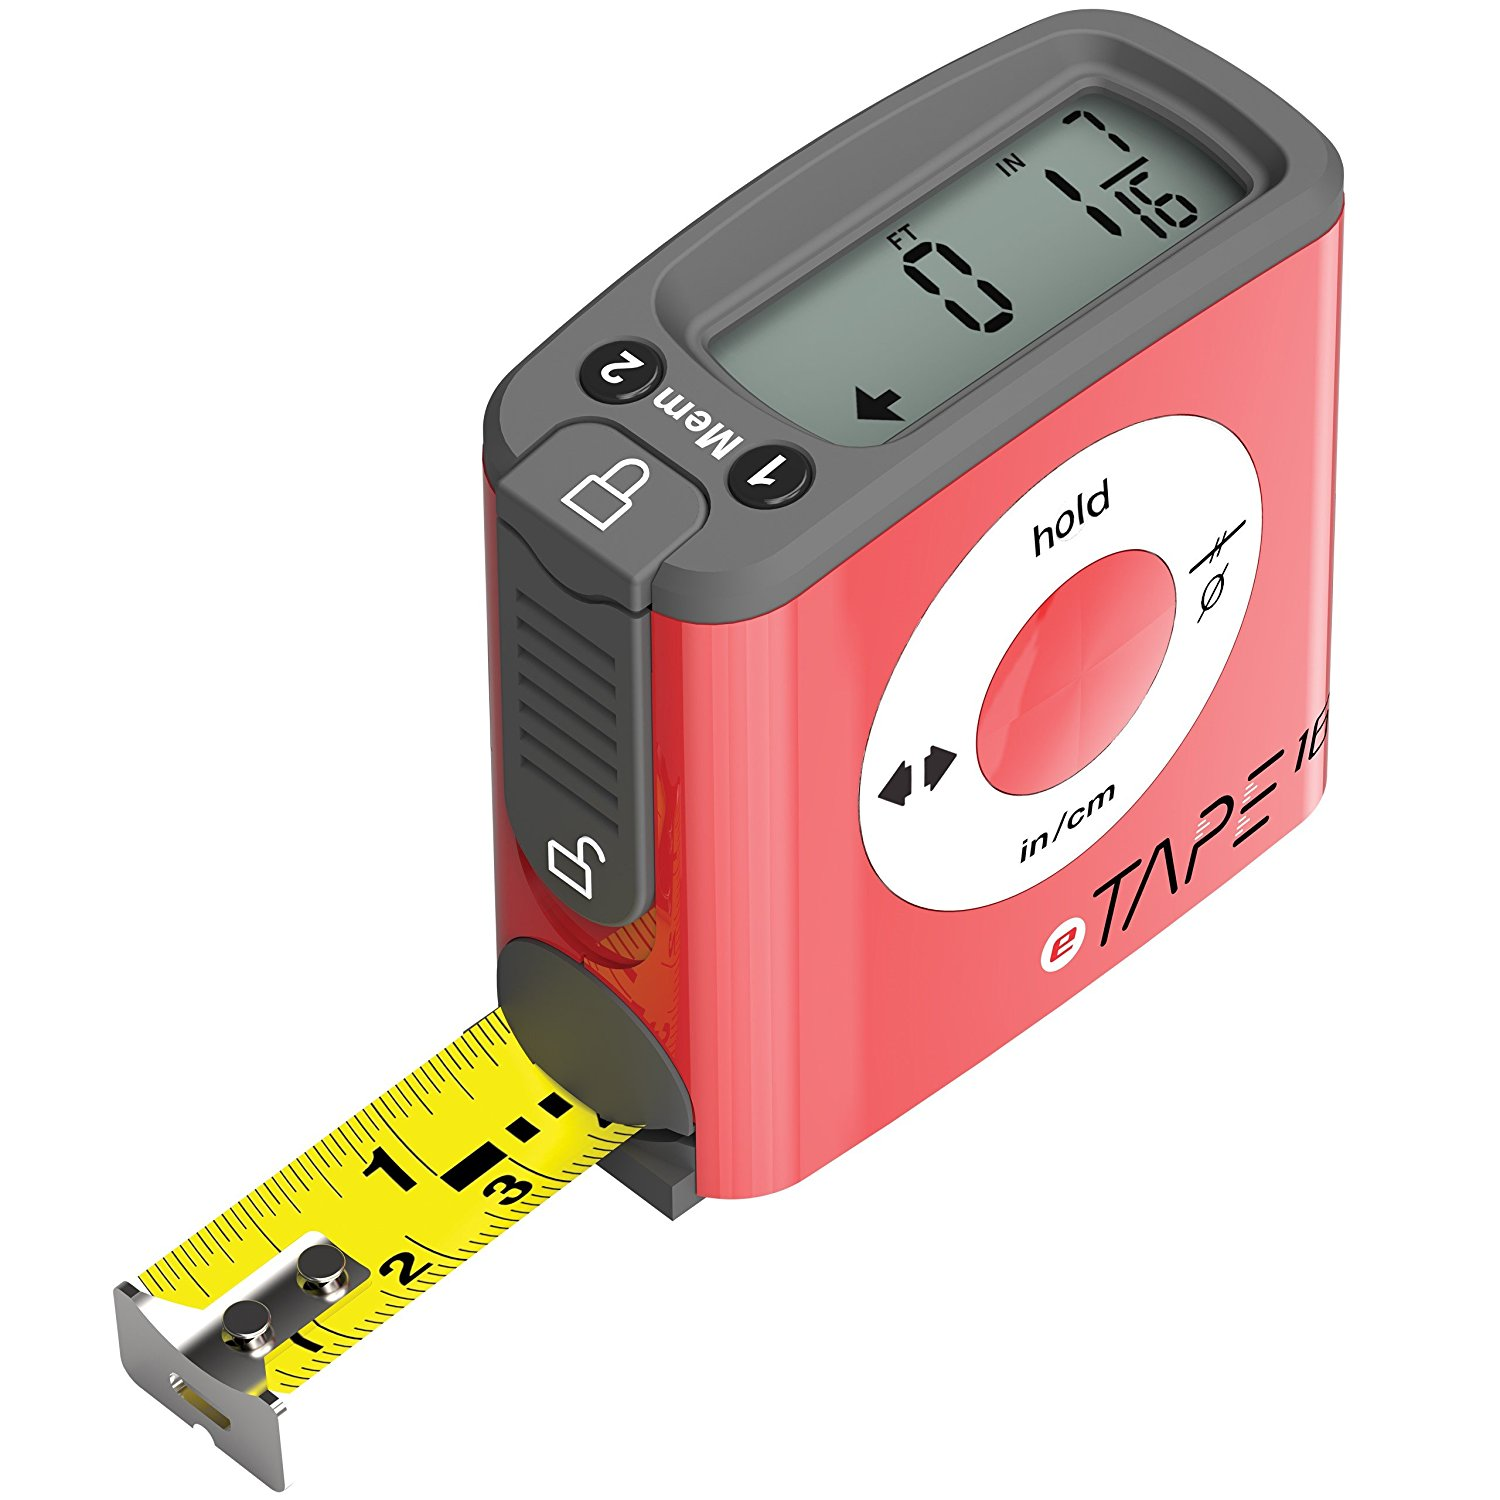 ET16.75-DB-RP Digital Tape Measure, 16', Red, Inch and Metric, The original digital tape measure. Measuring made easy the digital way By eTape16